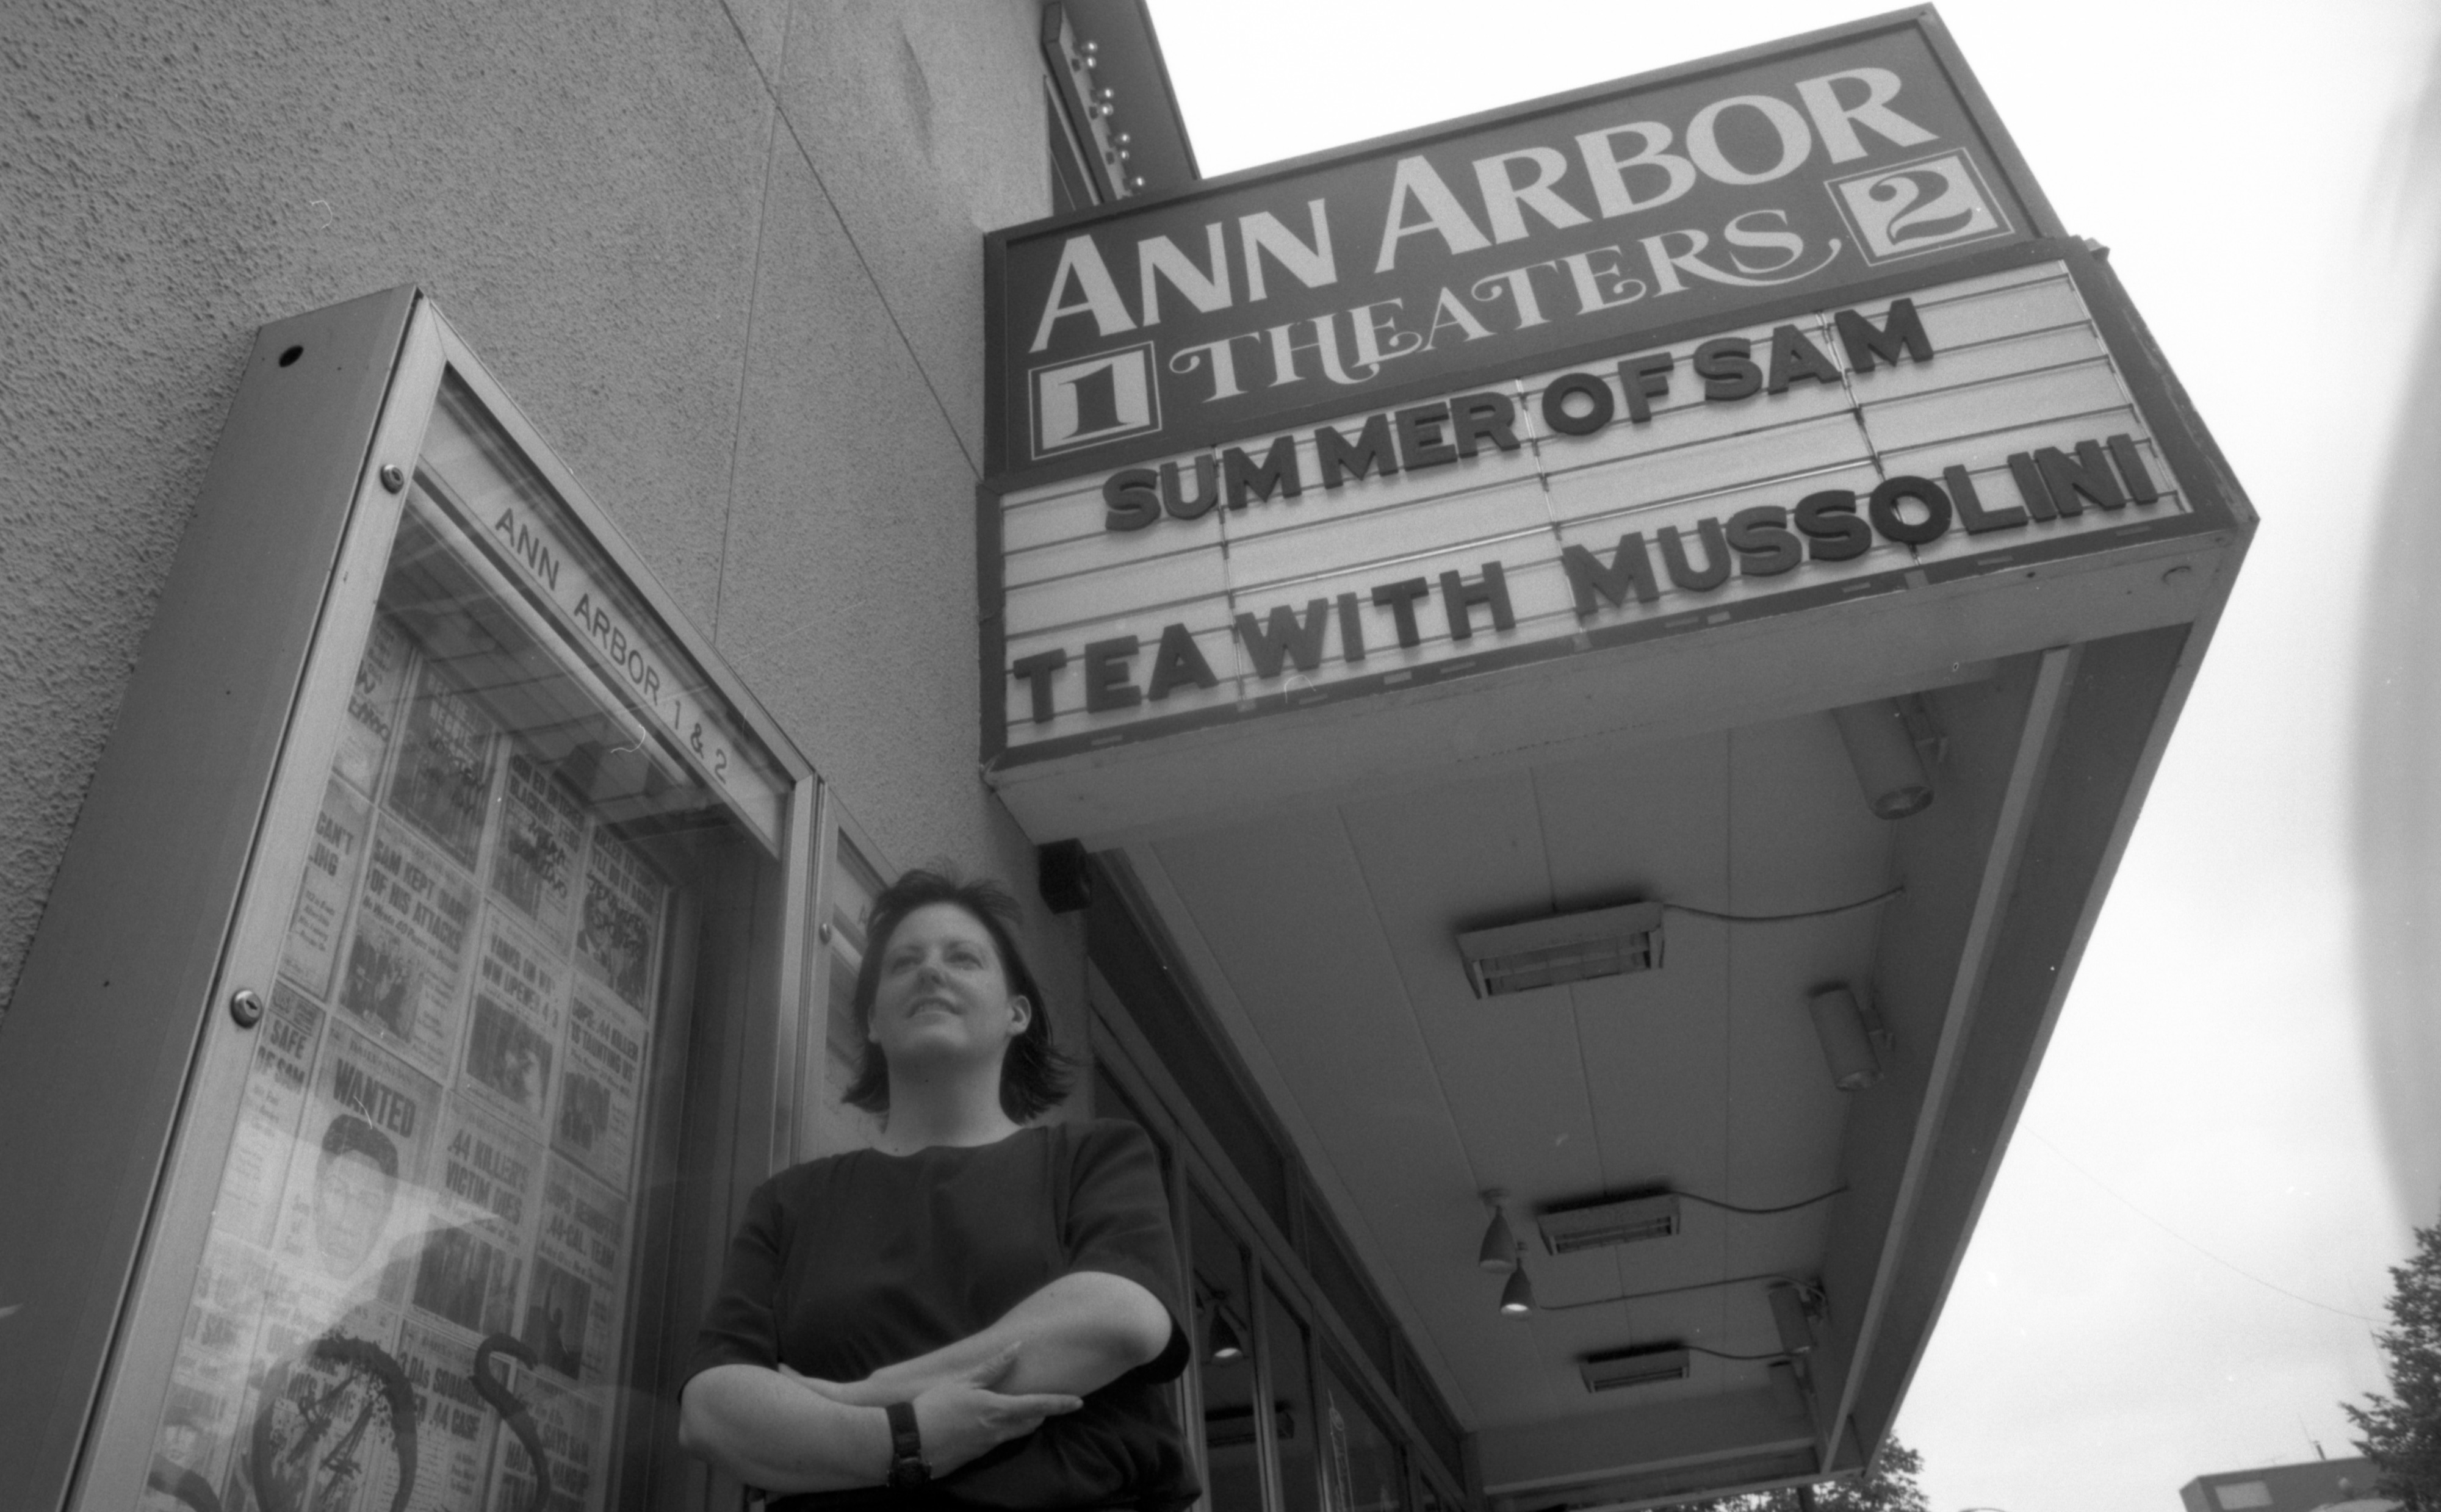 Ann Arbor Theaters 1 & 2, 210 S Fifth Ave, Manager Sue Heckenbrook, Standing In Front Of Marquee, July 1999 image